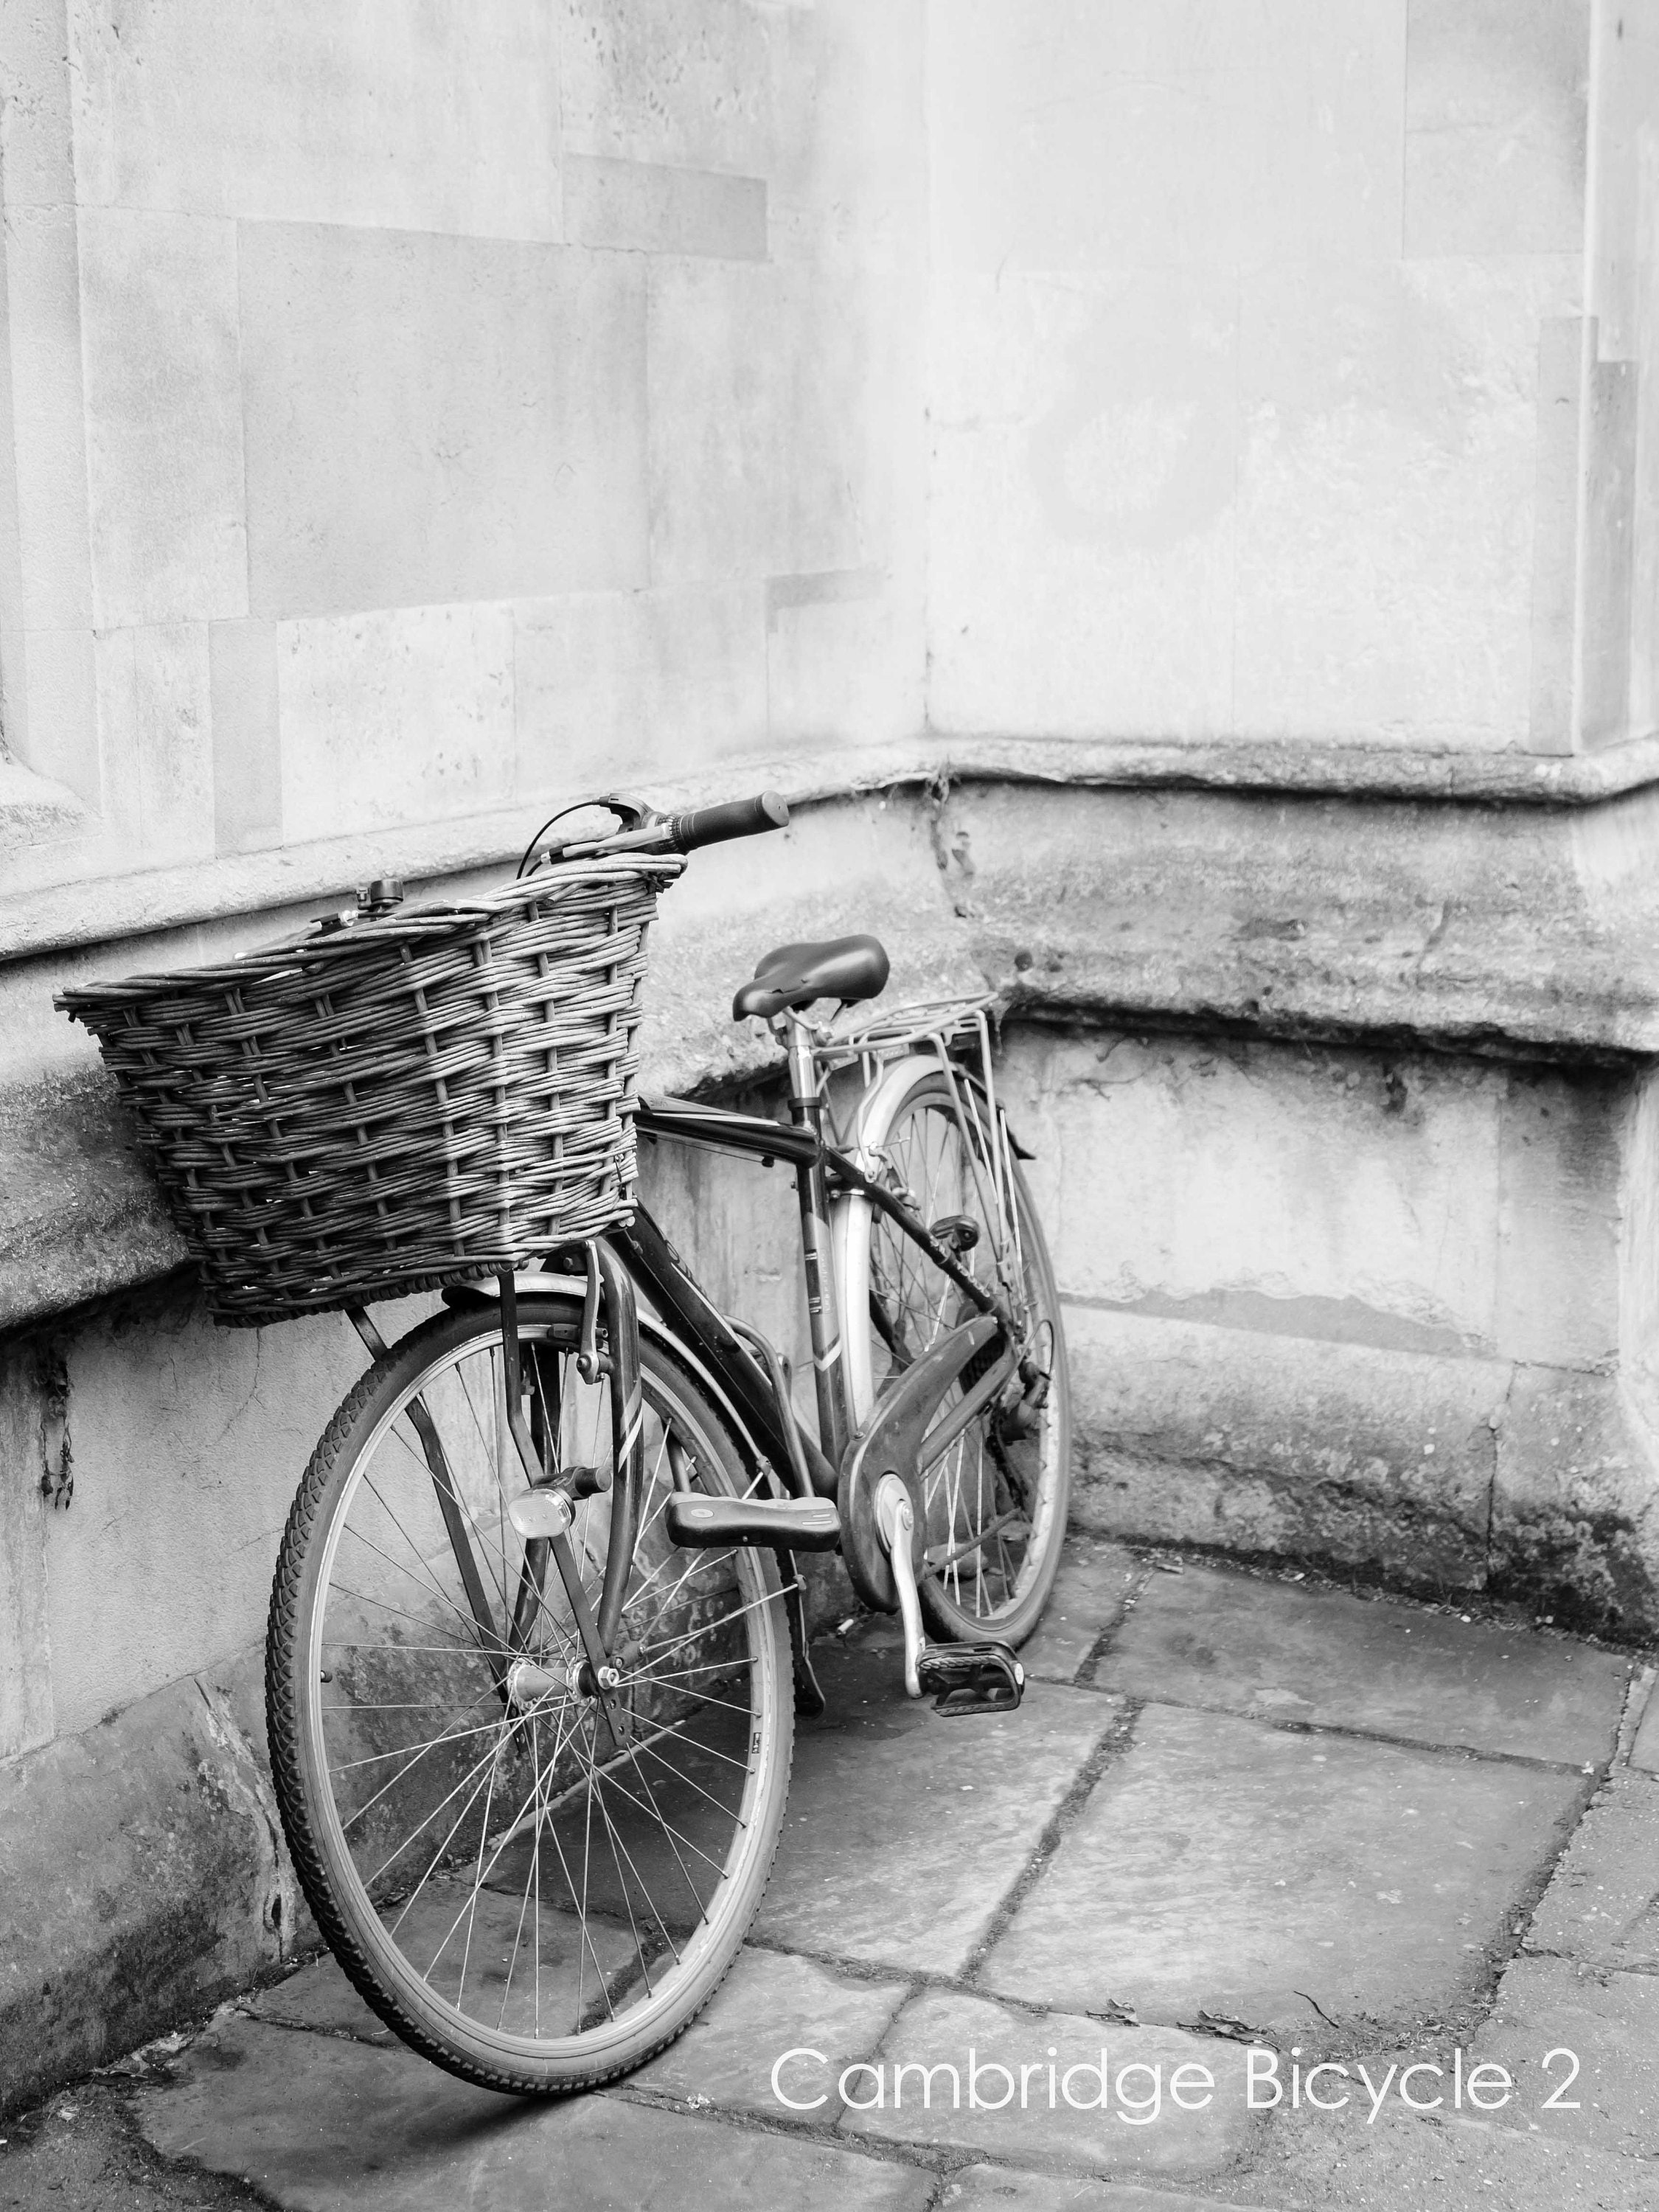 cambridge art print in black and white of bicycle parked with wicker basket in custom sizes and finishes- limited edition